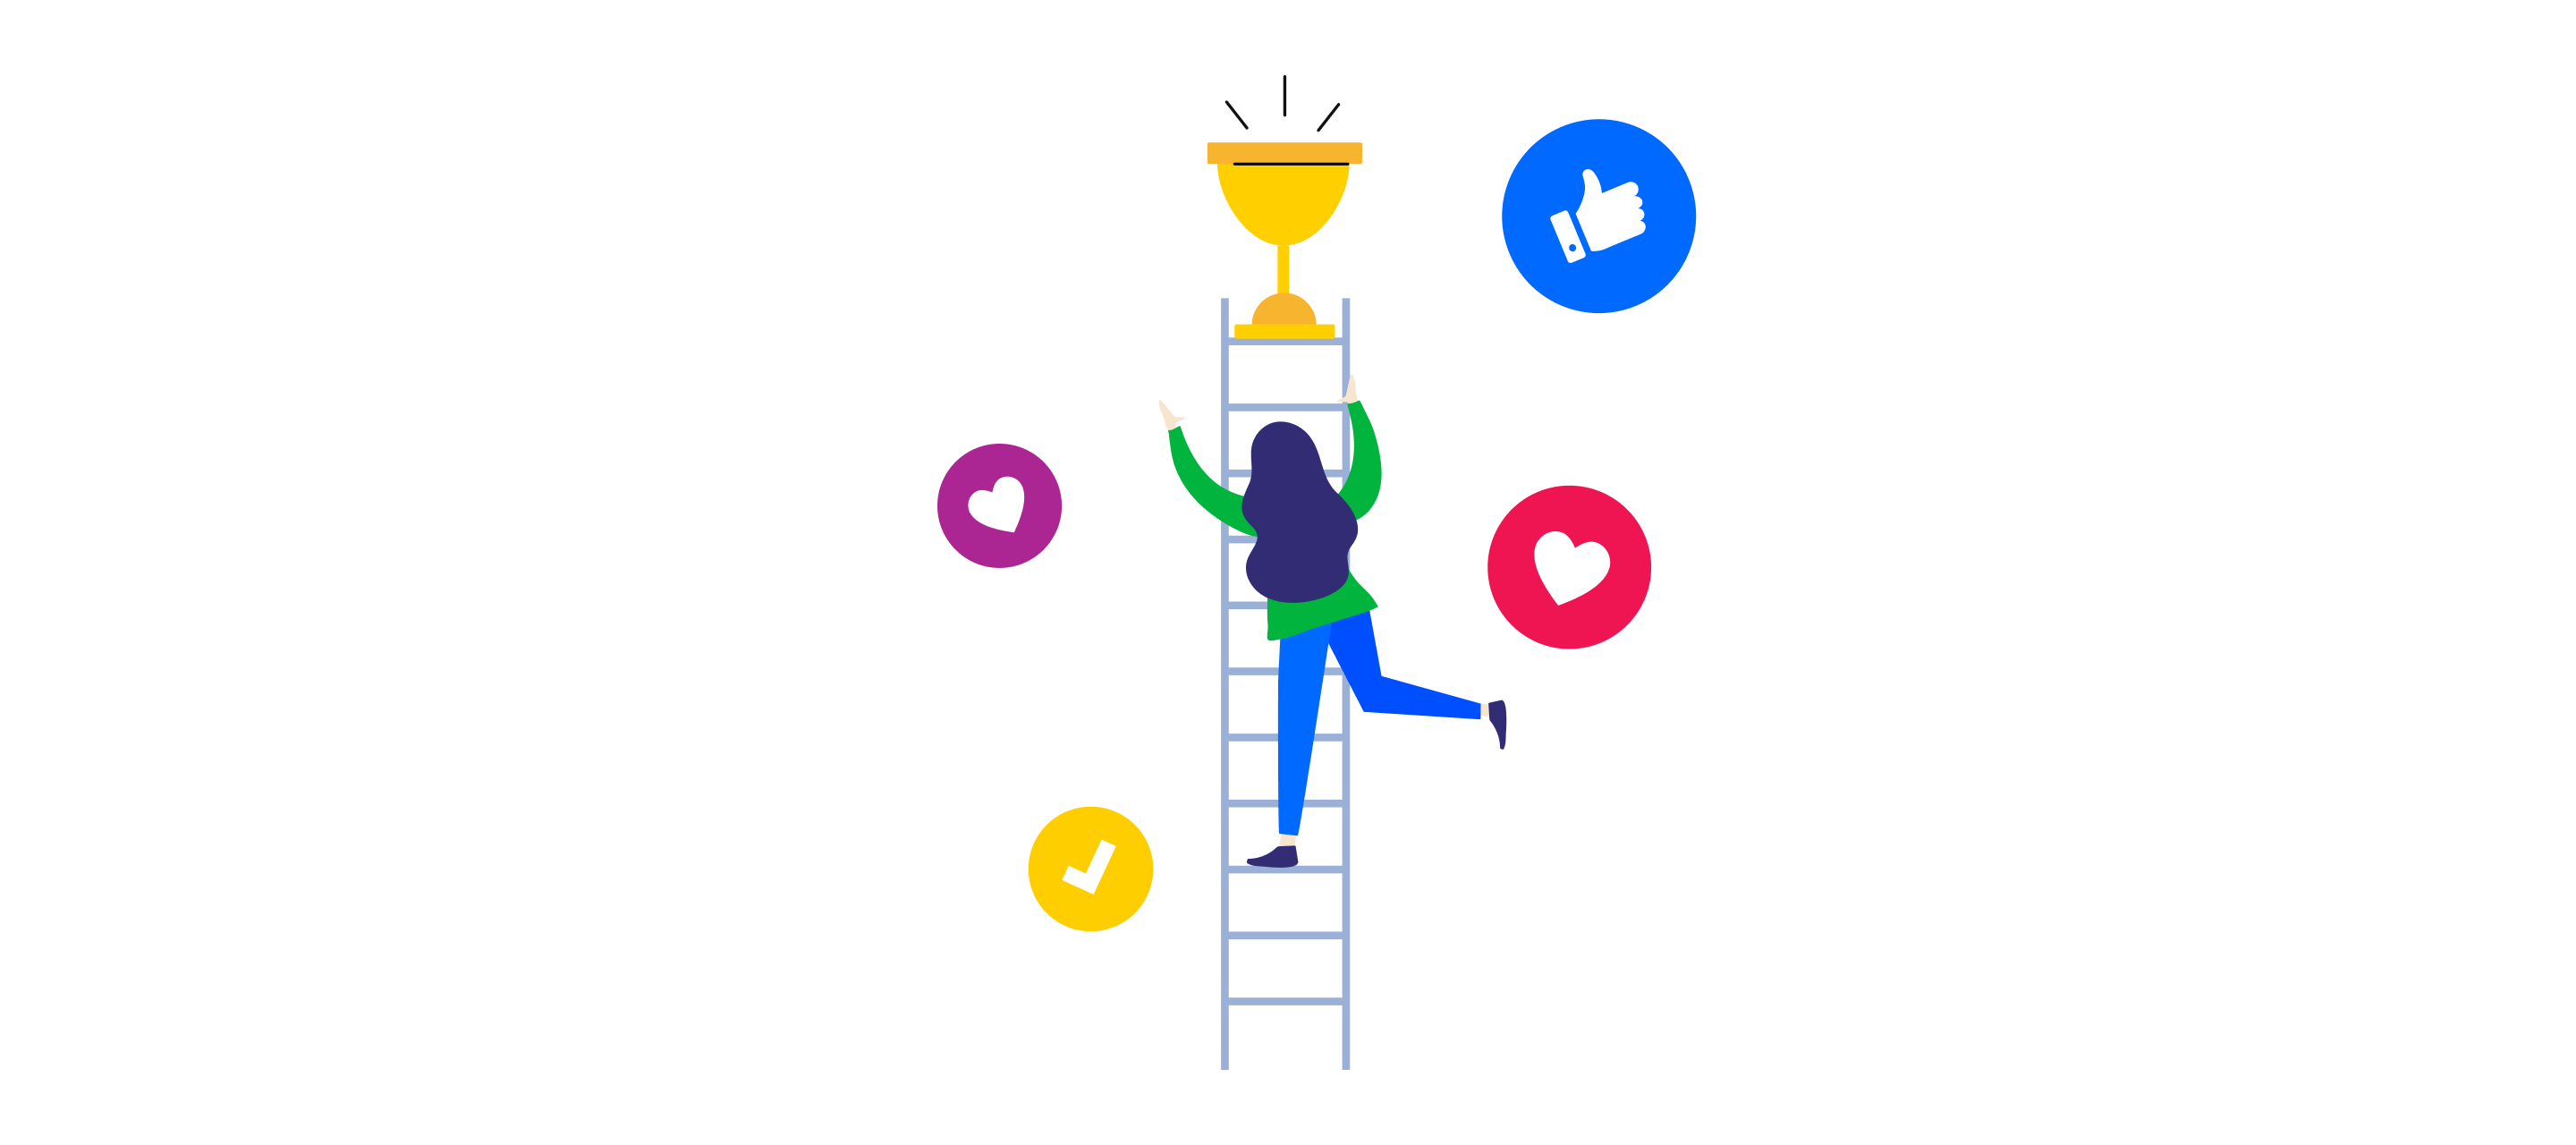 🥇🥈🥉 Target the competitive spirit of your members with a points-based leaderboard